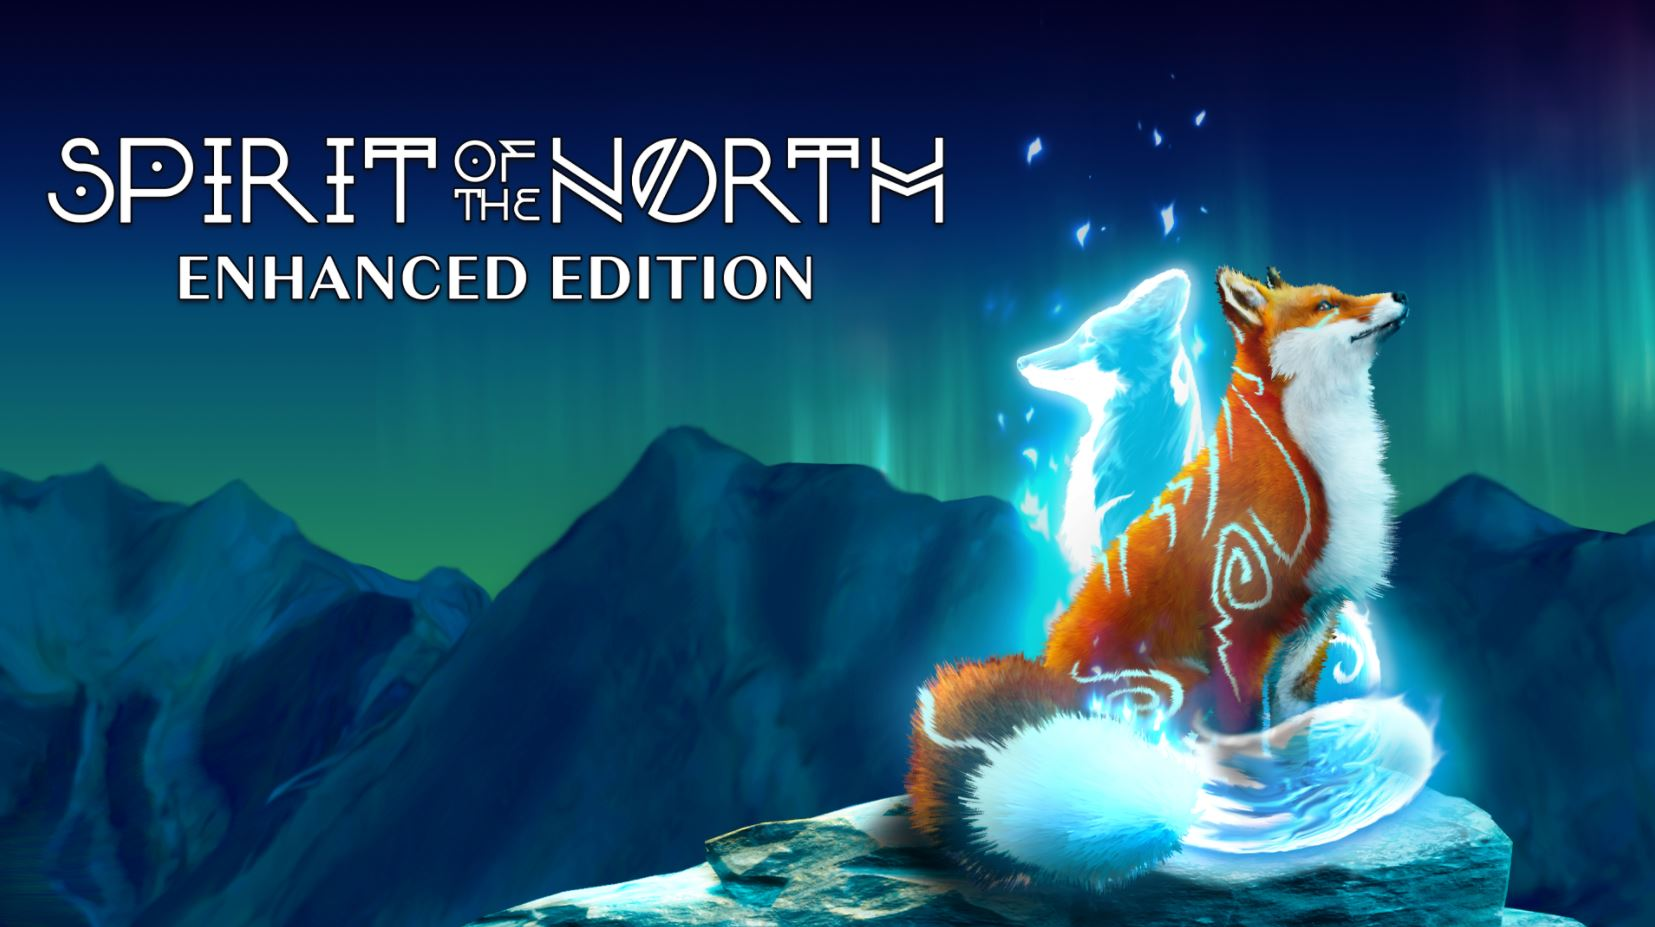 spirit-of-the-north-enhanced-edition-ps5-news-reviews-videos